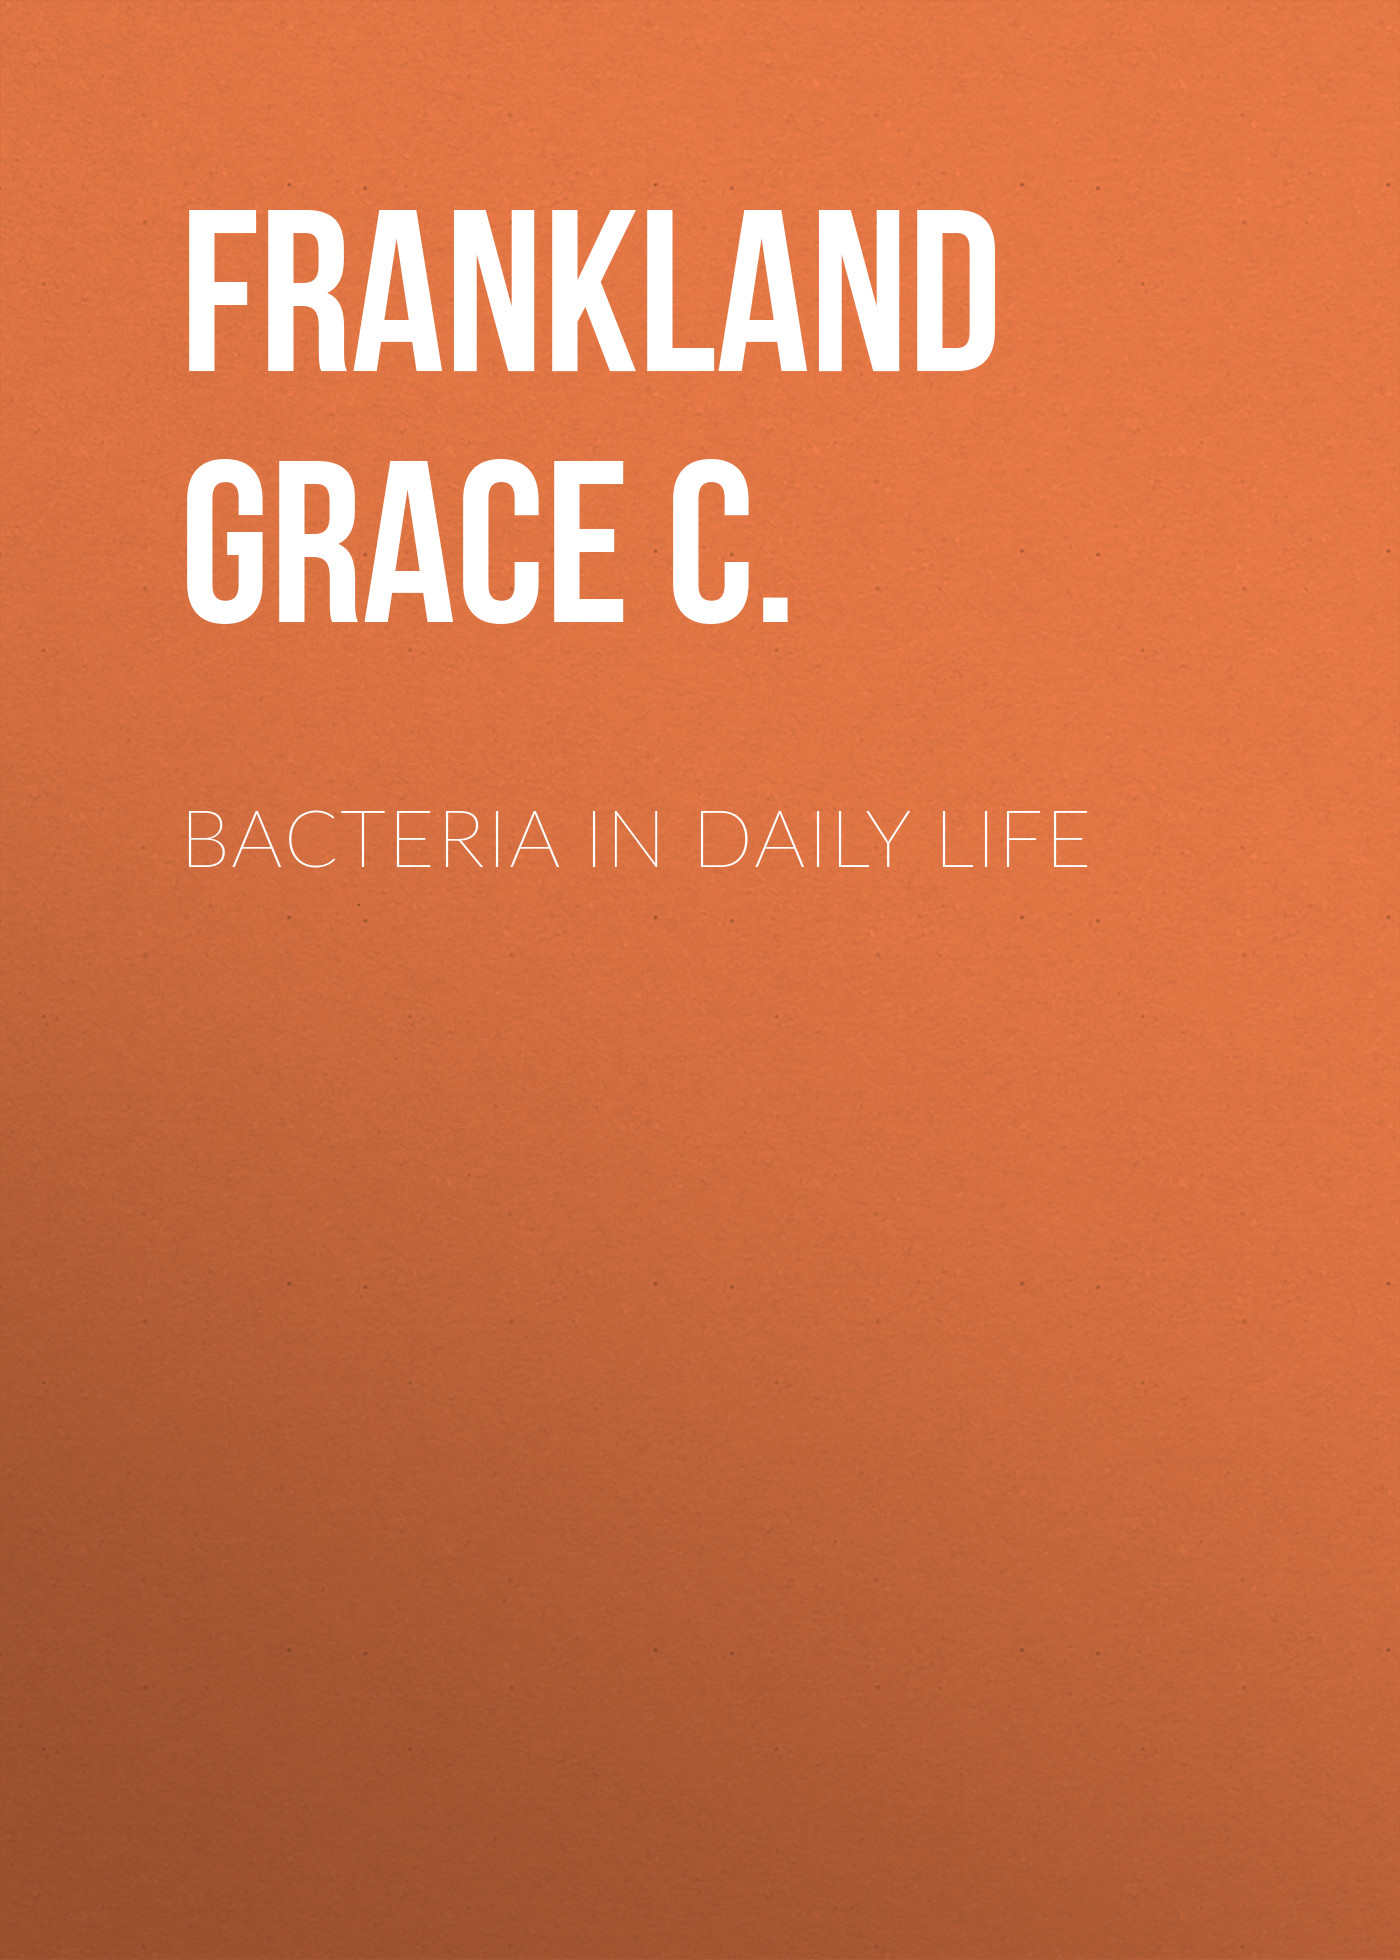 Frankland Grace C. Bacteria in Daily Life